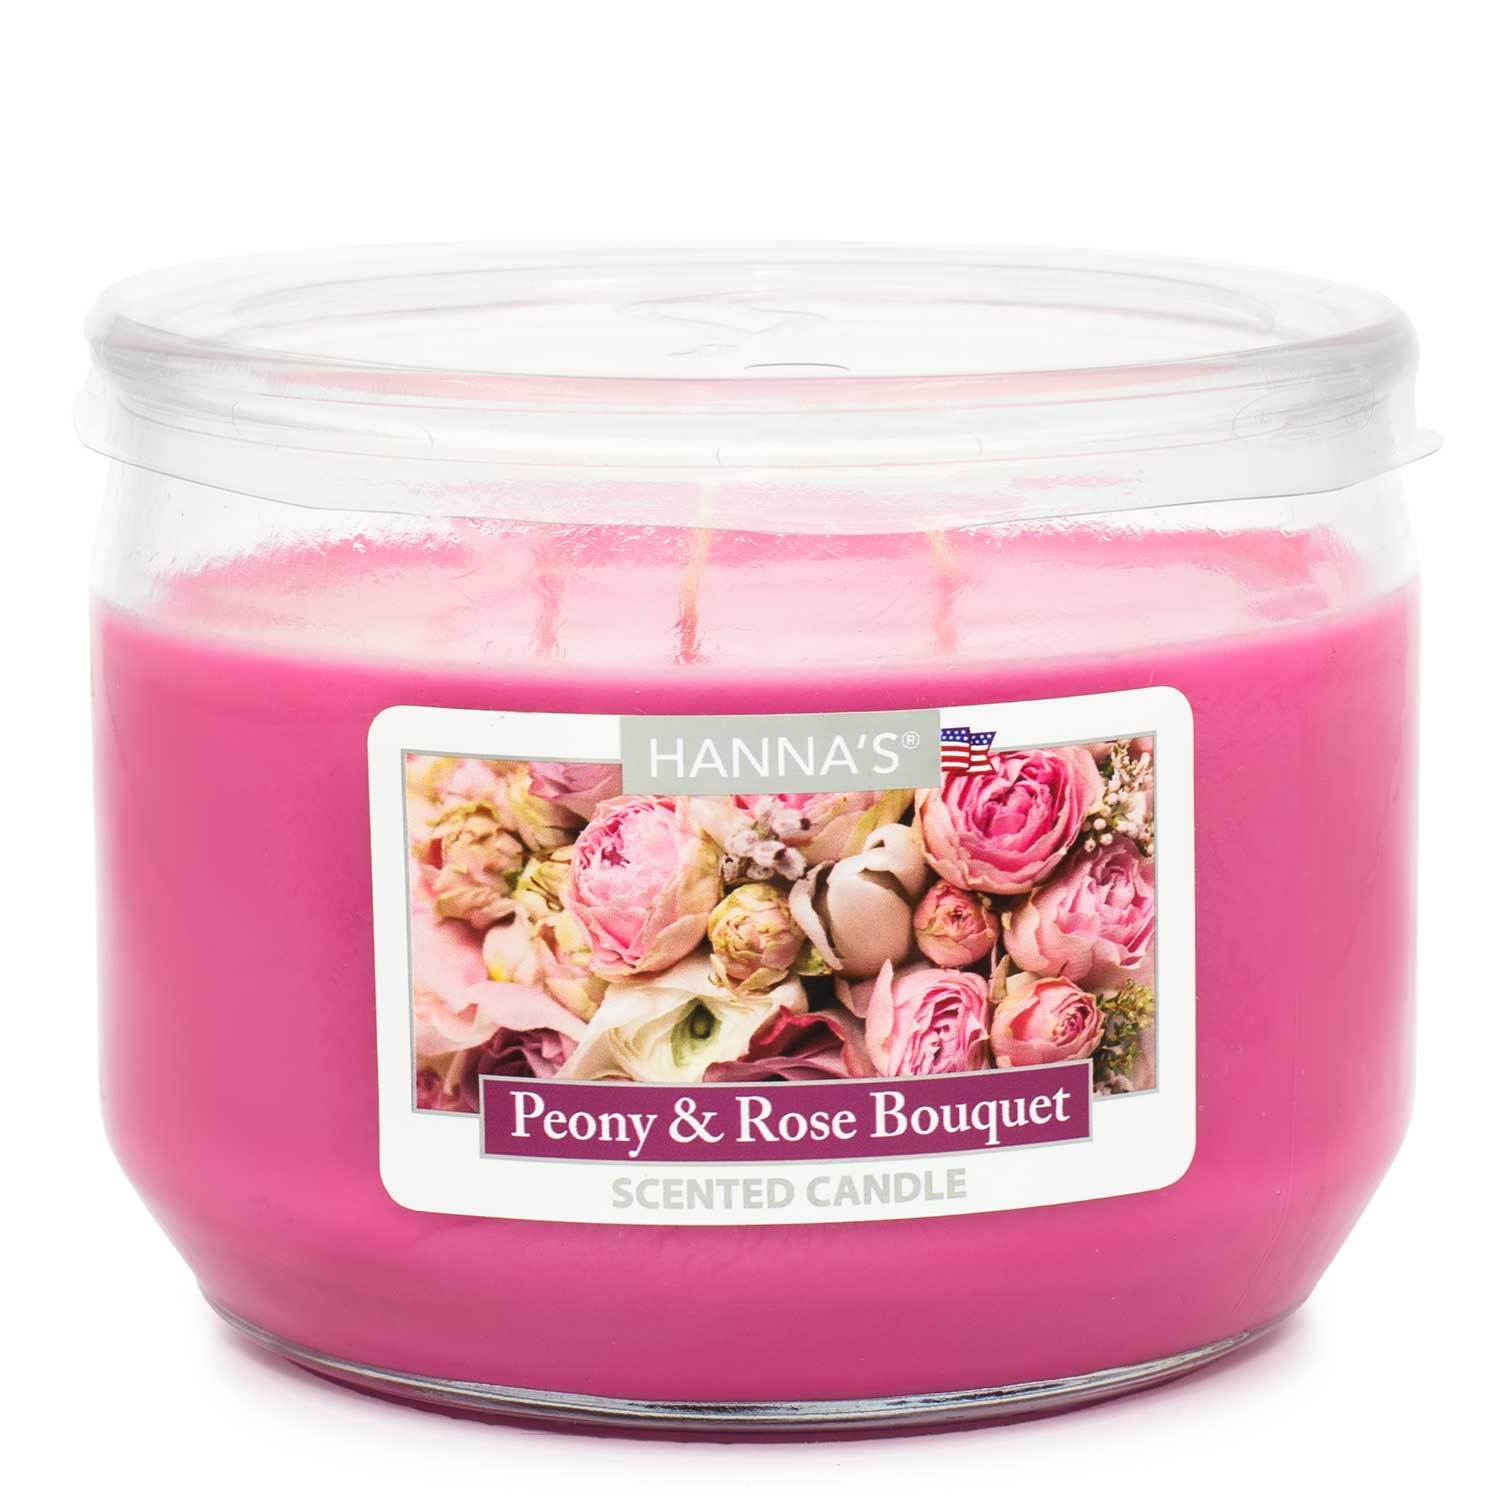 Peony Rose Bouquet Scented 3 wick Candle Candles Candlemart.com $ 7.99